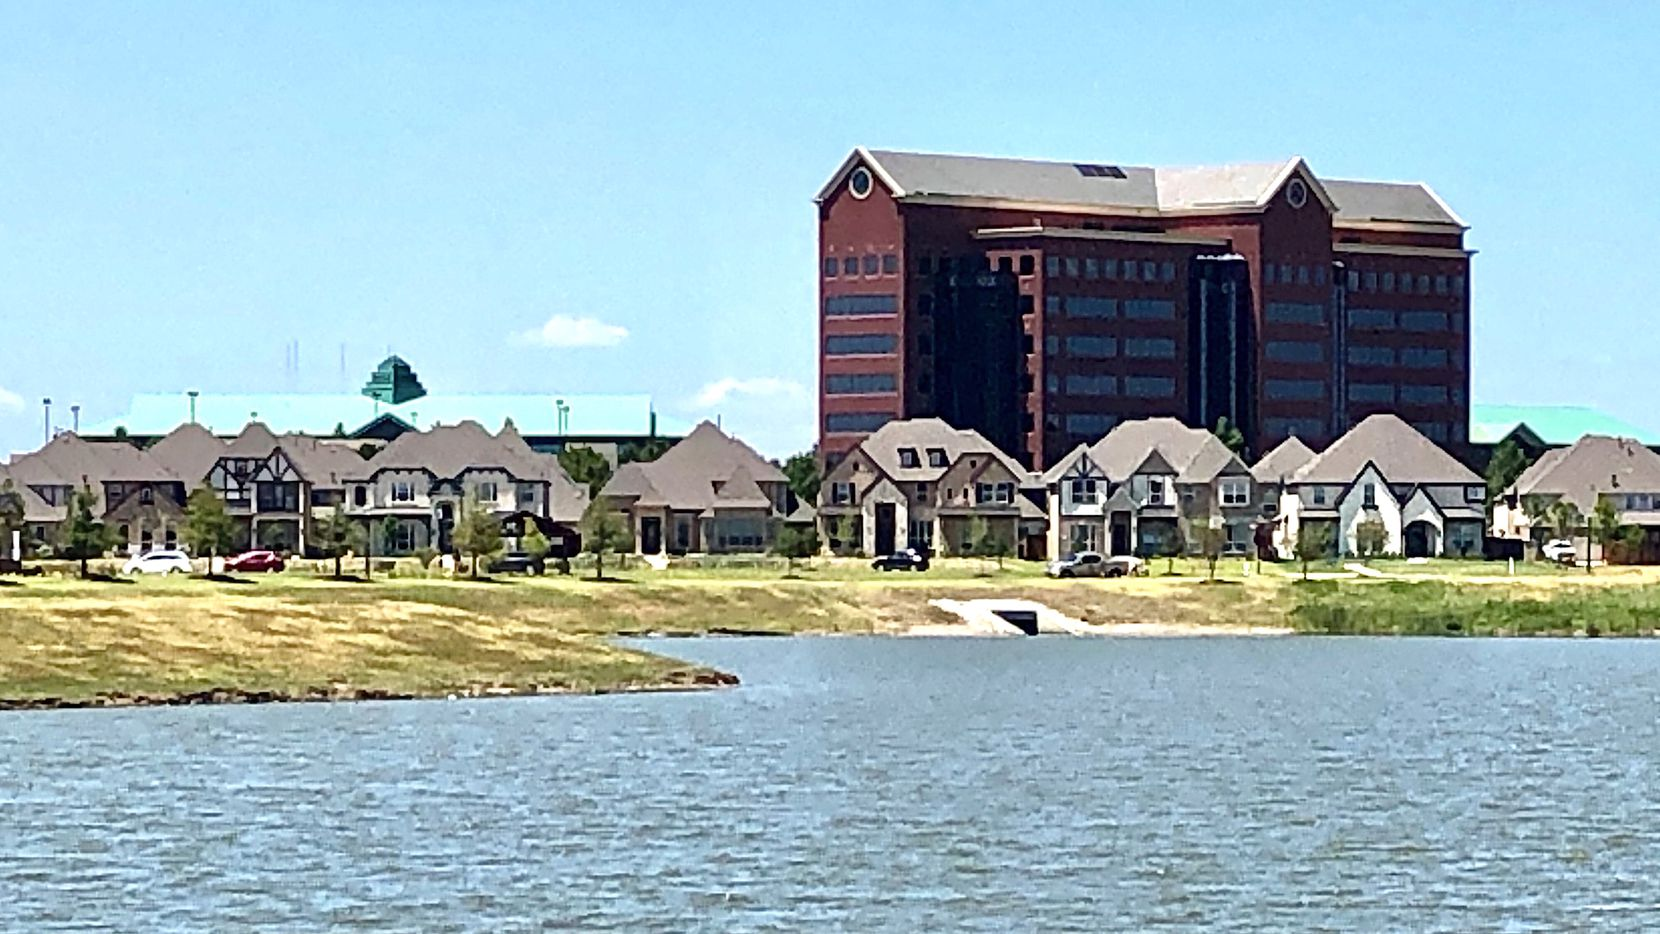 Centurion American is planning the waterside development in its Mercer Crossing project in Farmers Branch.